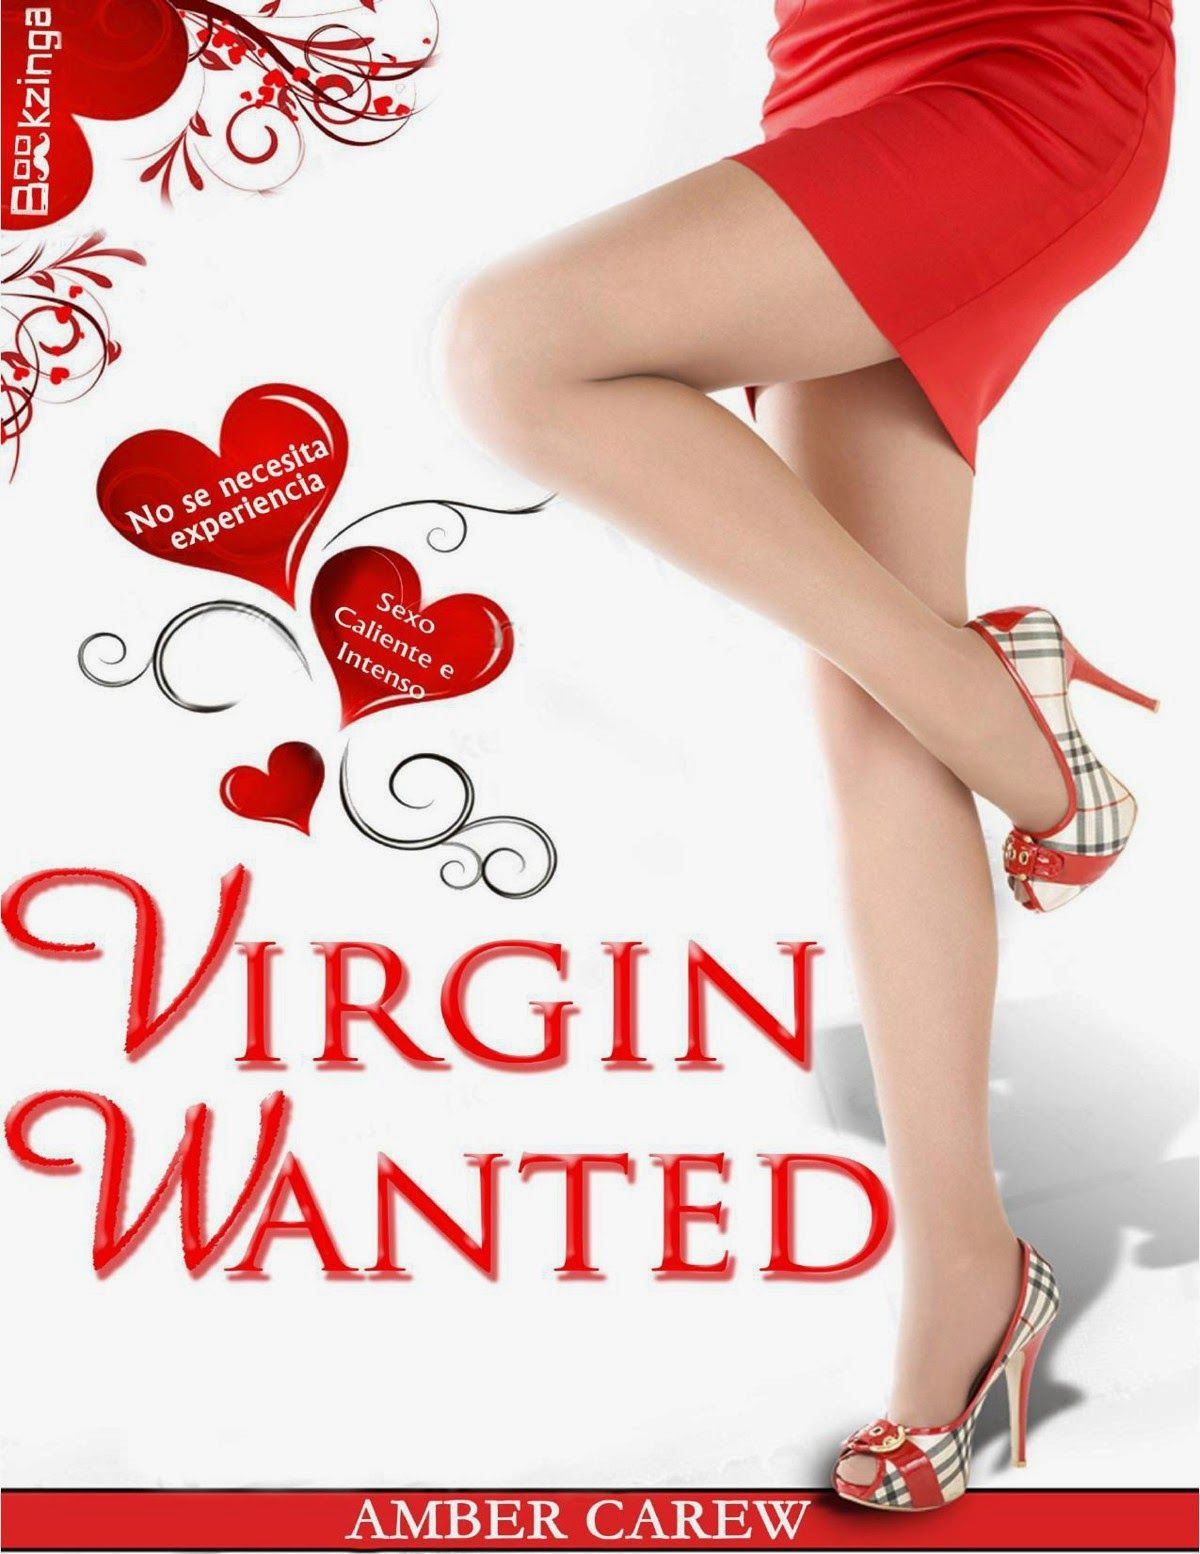 VIRGIN WANTED, AMBER CAREW http://bookadictas.blogspot.com/search?updated-max=2014-07-08T19:05:00-04:30